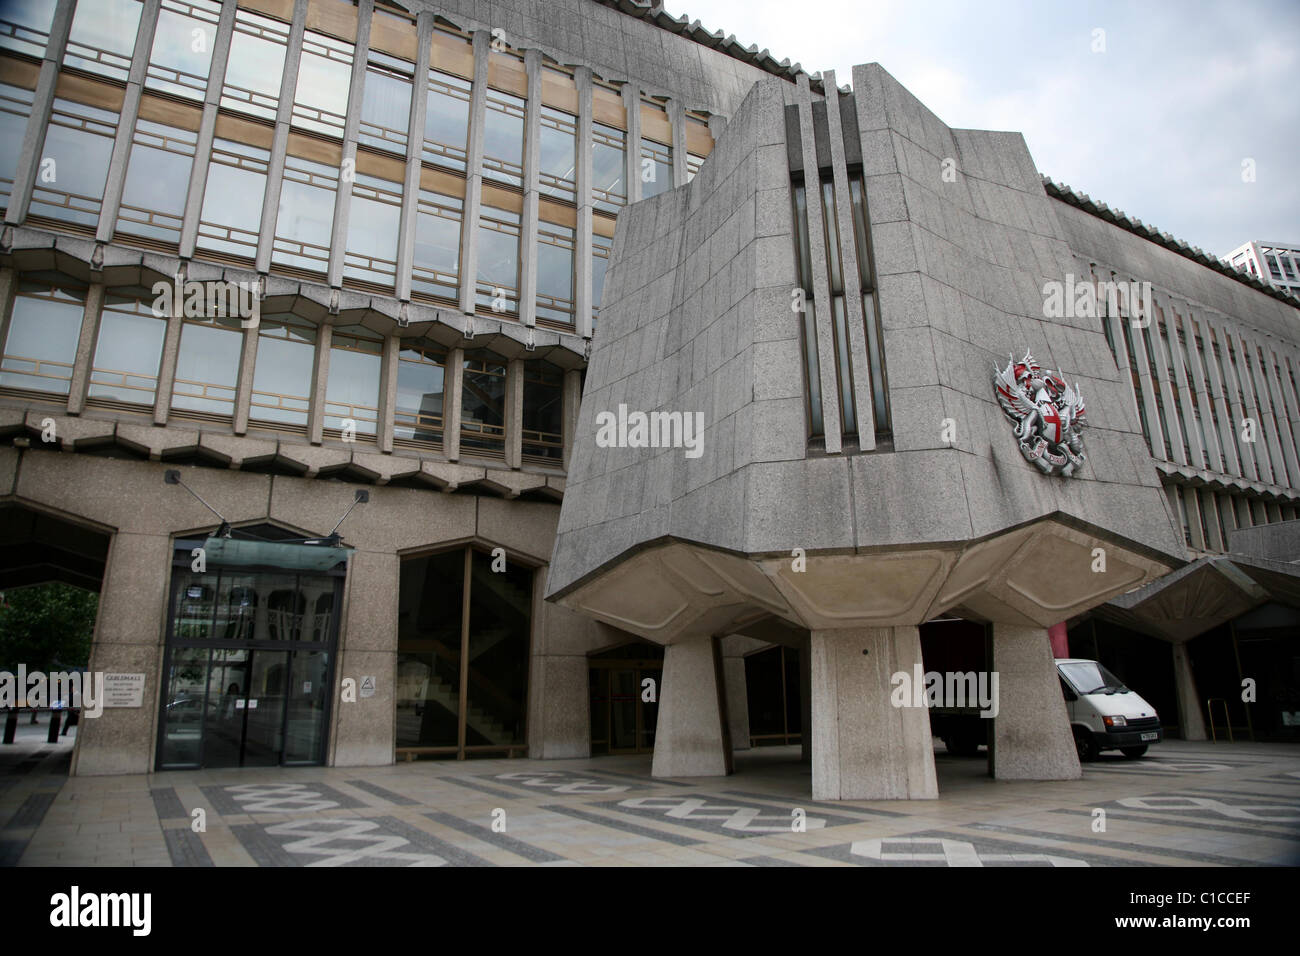 General View gv of Guildhall in Barbican,  London, England. - Stock Image